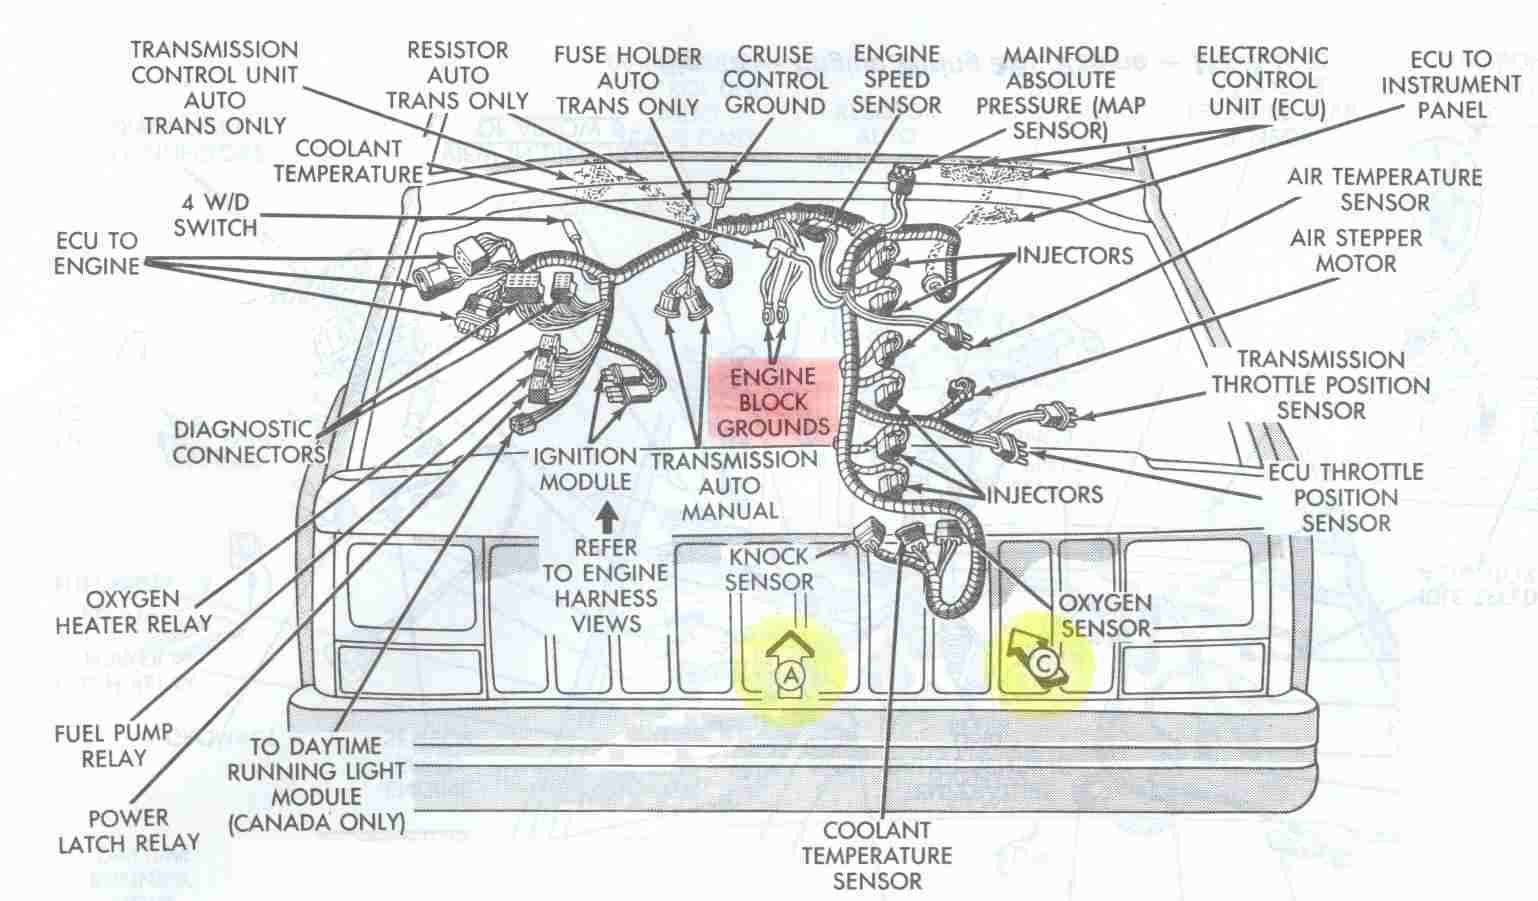 Engine Bay schematic showing major electrical ground points ... on jeep tach, jeep relay wiring, jeep seat belt harness, jeep wiring connectors, jeep wire connectors, jeep electrical harness, jeep carrier bearing, jeep key switch, jeep condensor, jeep visor clip, jeep exhaust gasket, jeep knock sensor, jeep intake gasket, jeep gas sending unit, jeep sport emblem, jeep vacuum advance, jeep bracket, jeep exhaust leak, jeep engine harness, jeep wiring diagram,